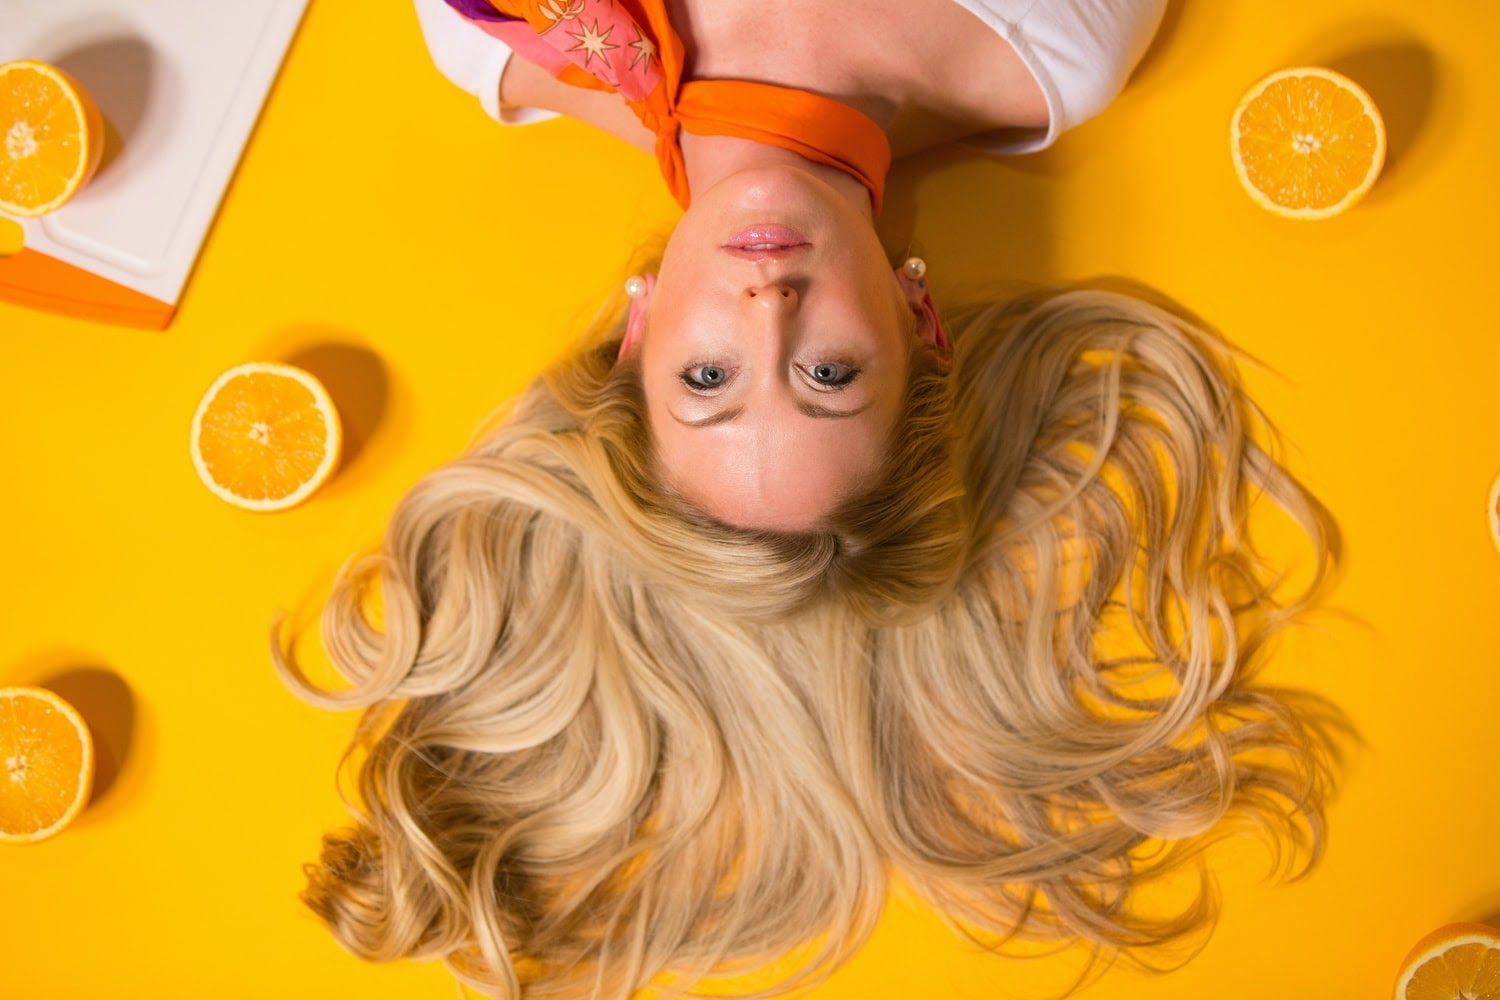 Top Tips That Will Make Your Hair Longer And Thicker | Beauty Tips | Elle Blonde Luxury Lifestyle Destination Blog